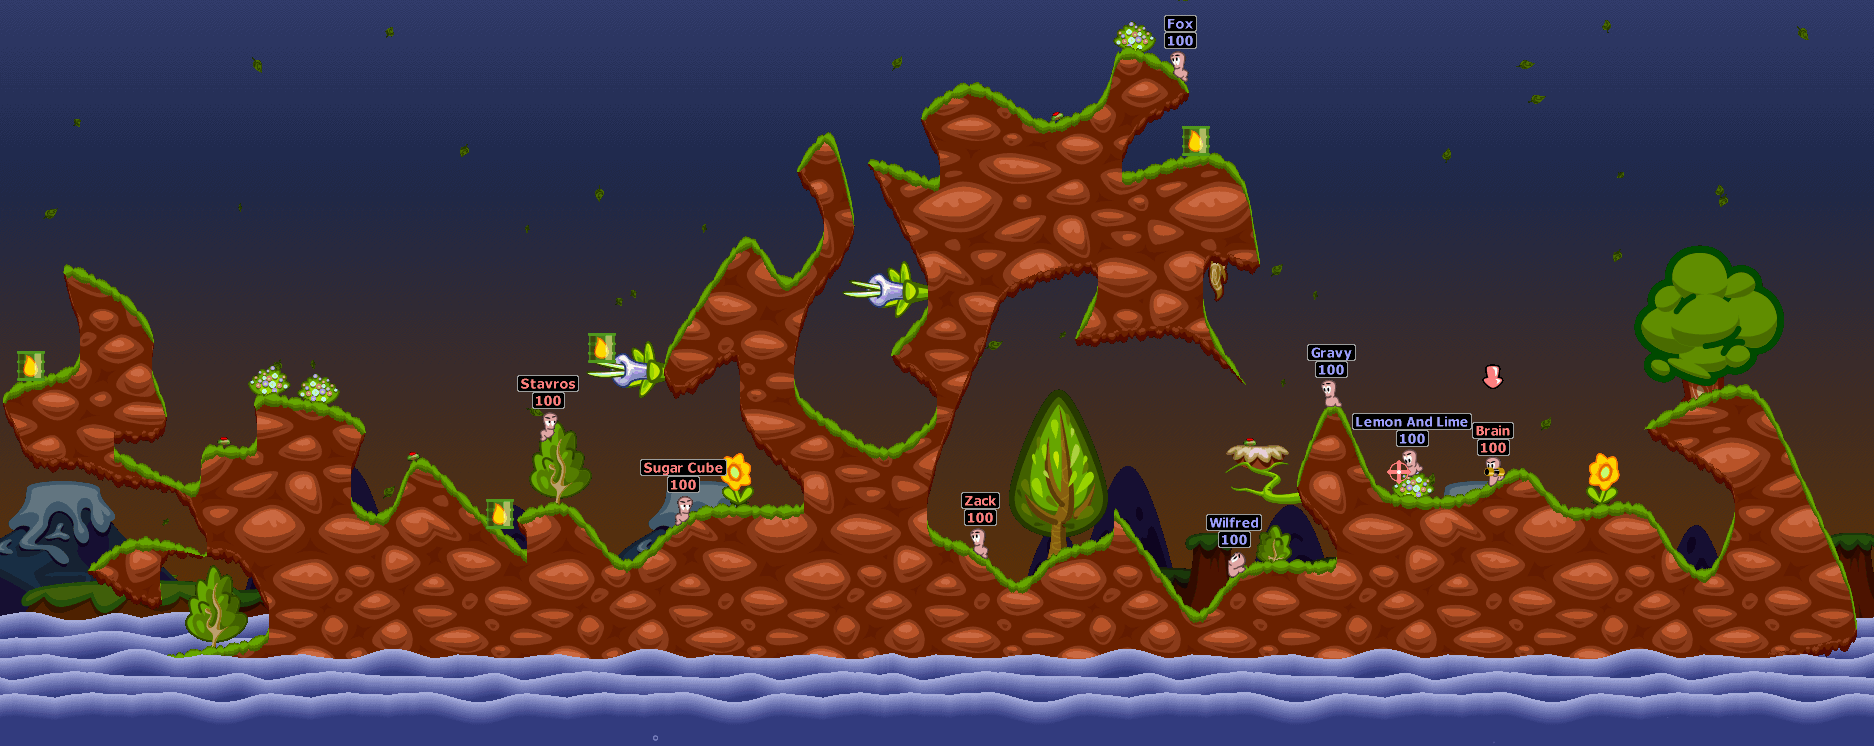 Play Original Worms Game Online Free